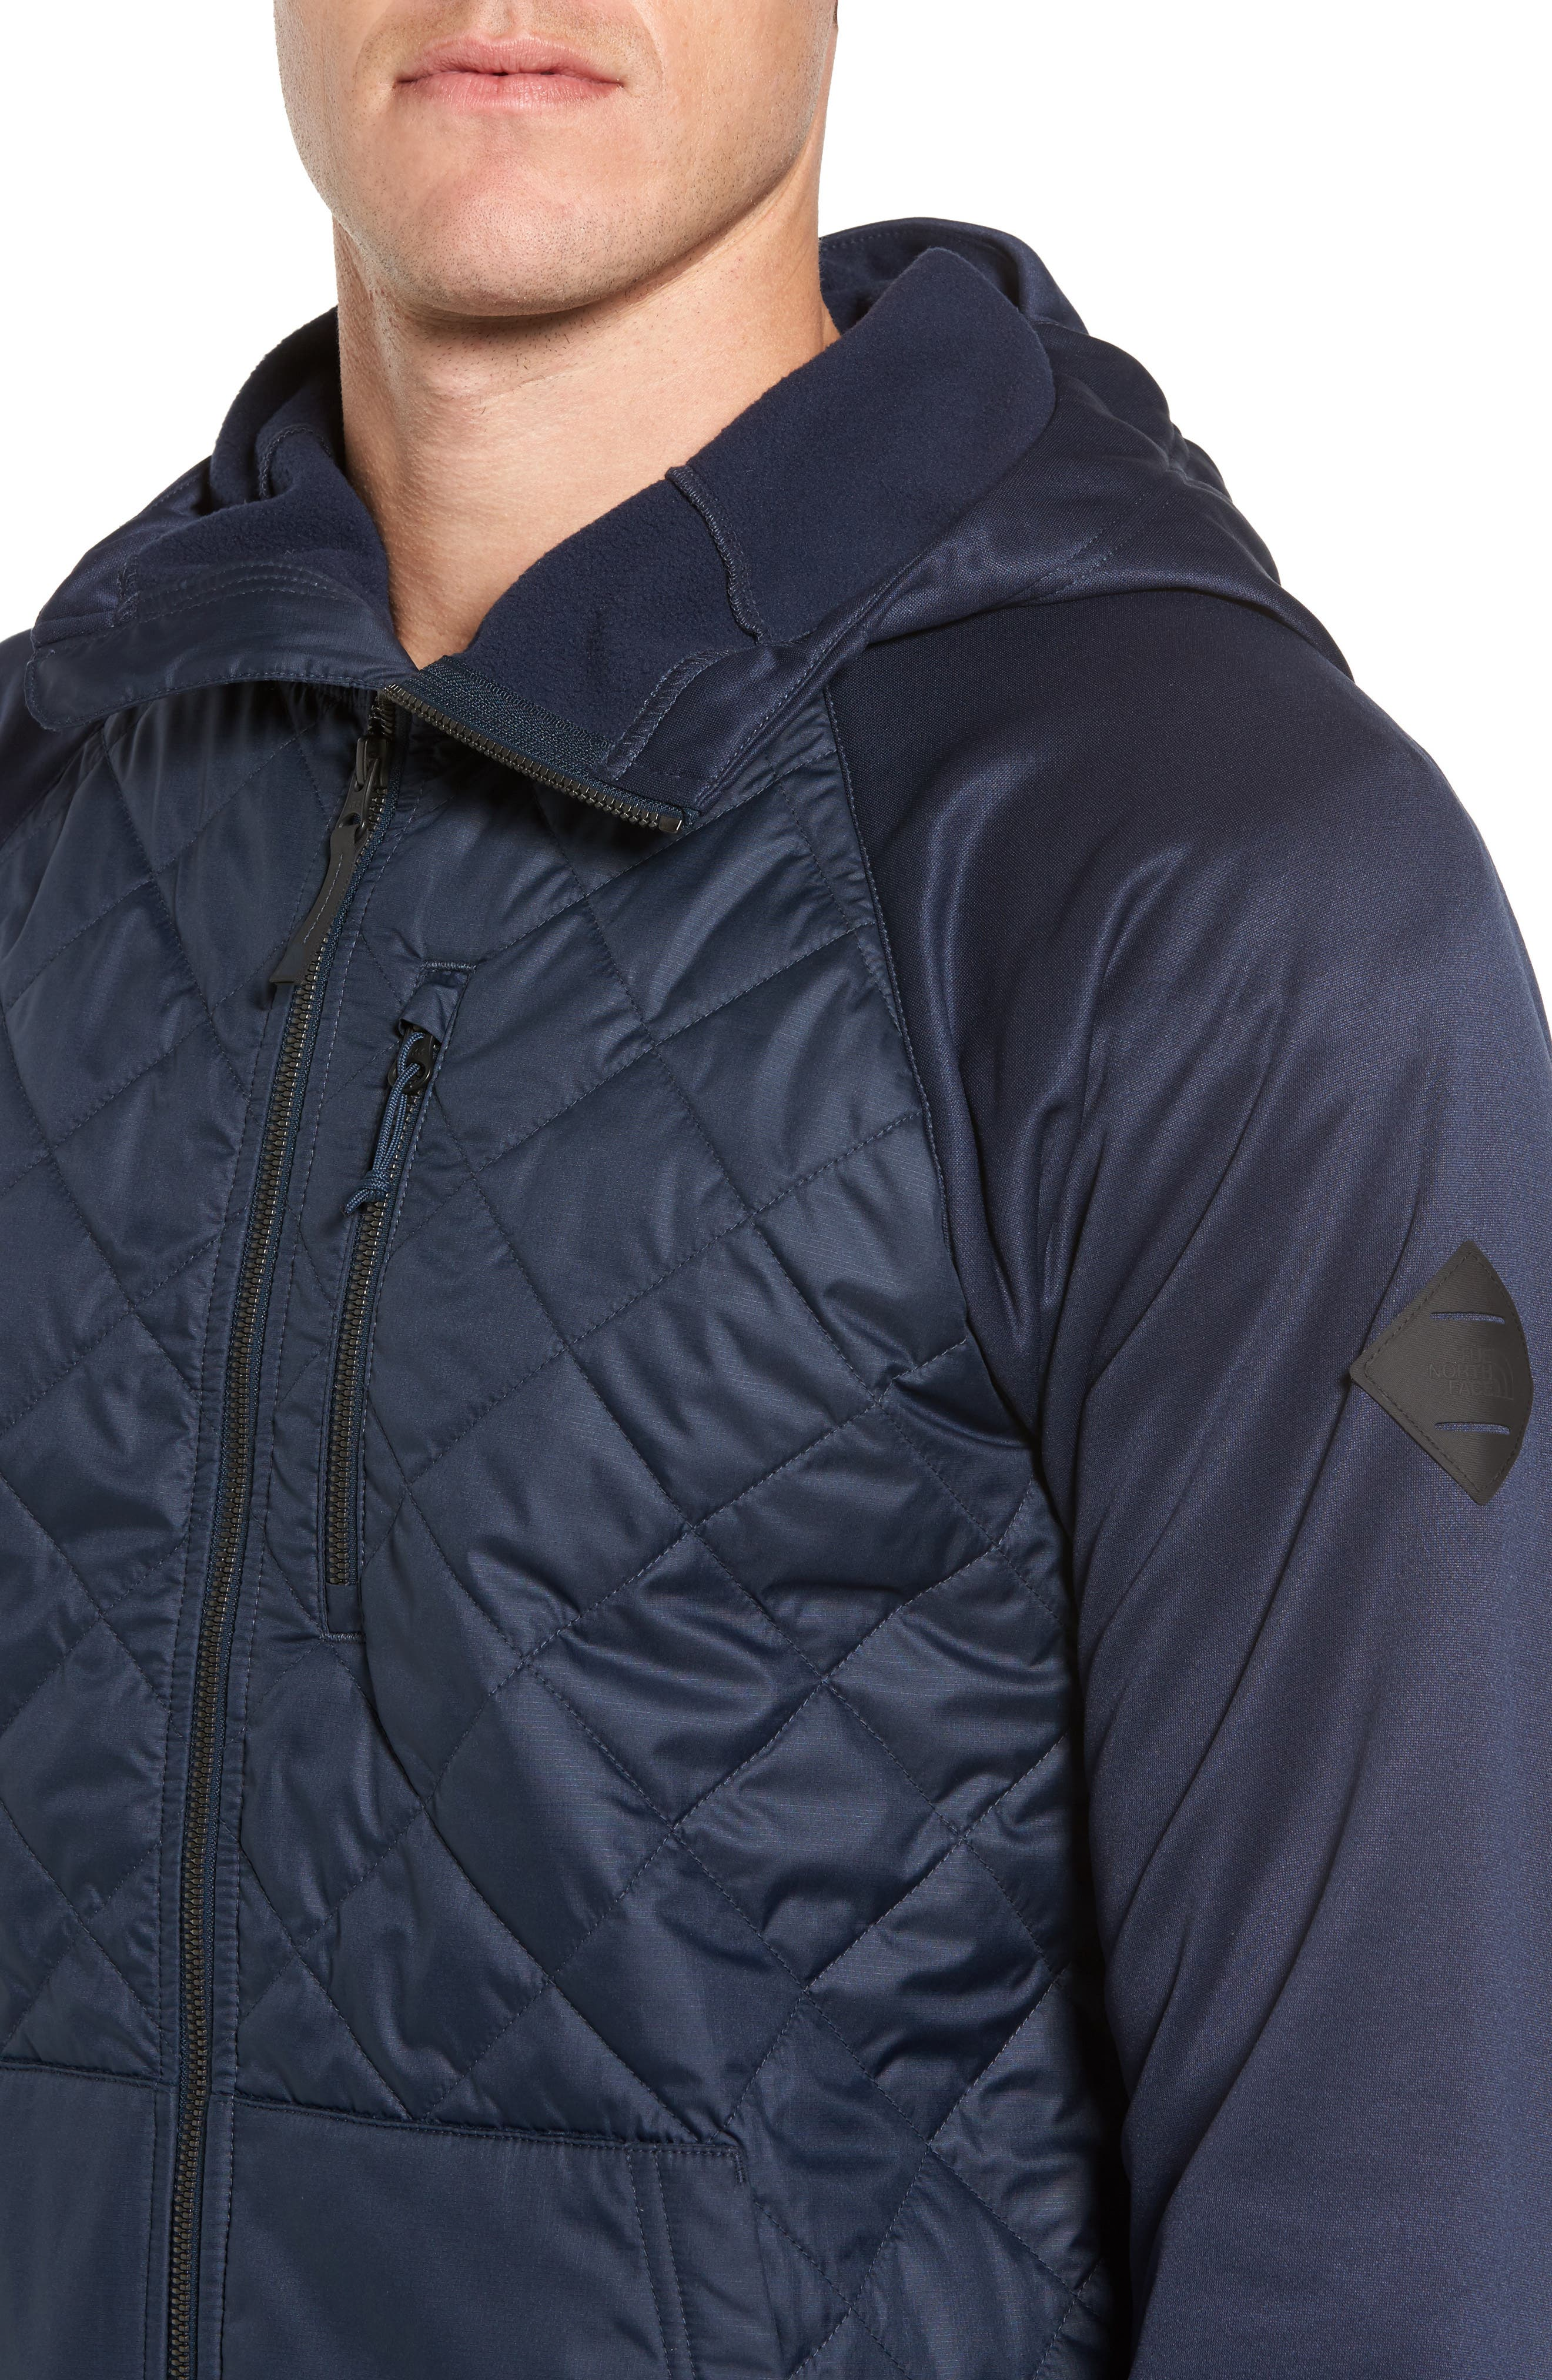 Pilsen Hybrid Jacket,                             Alternate thumbnail 10, color,